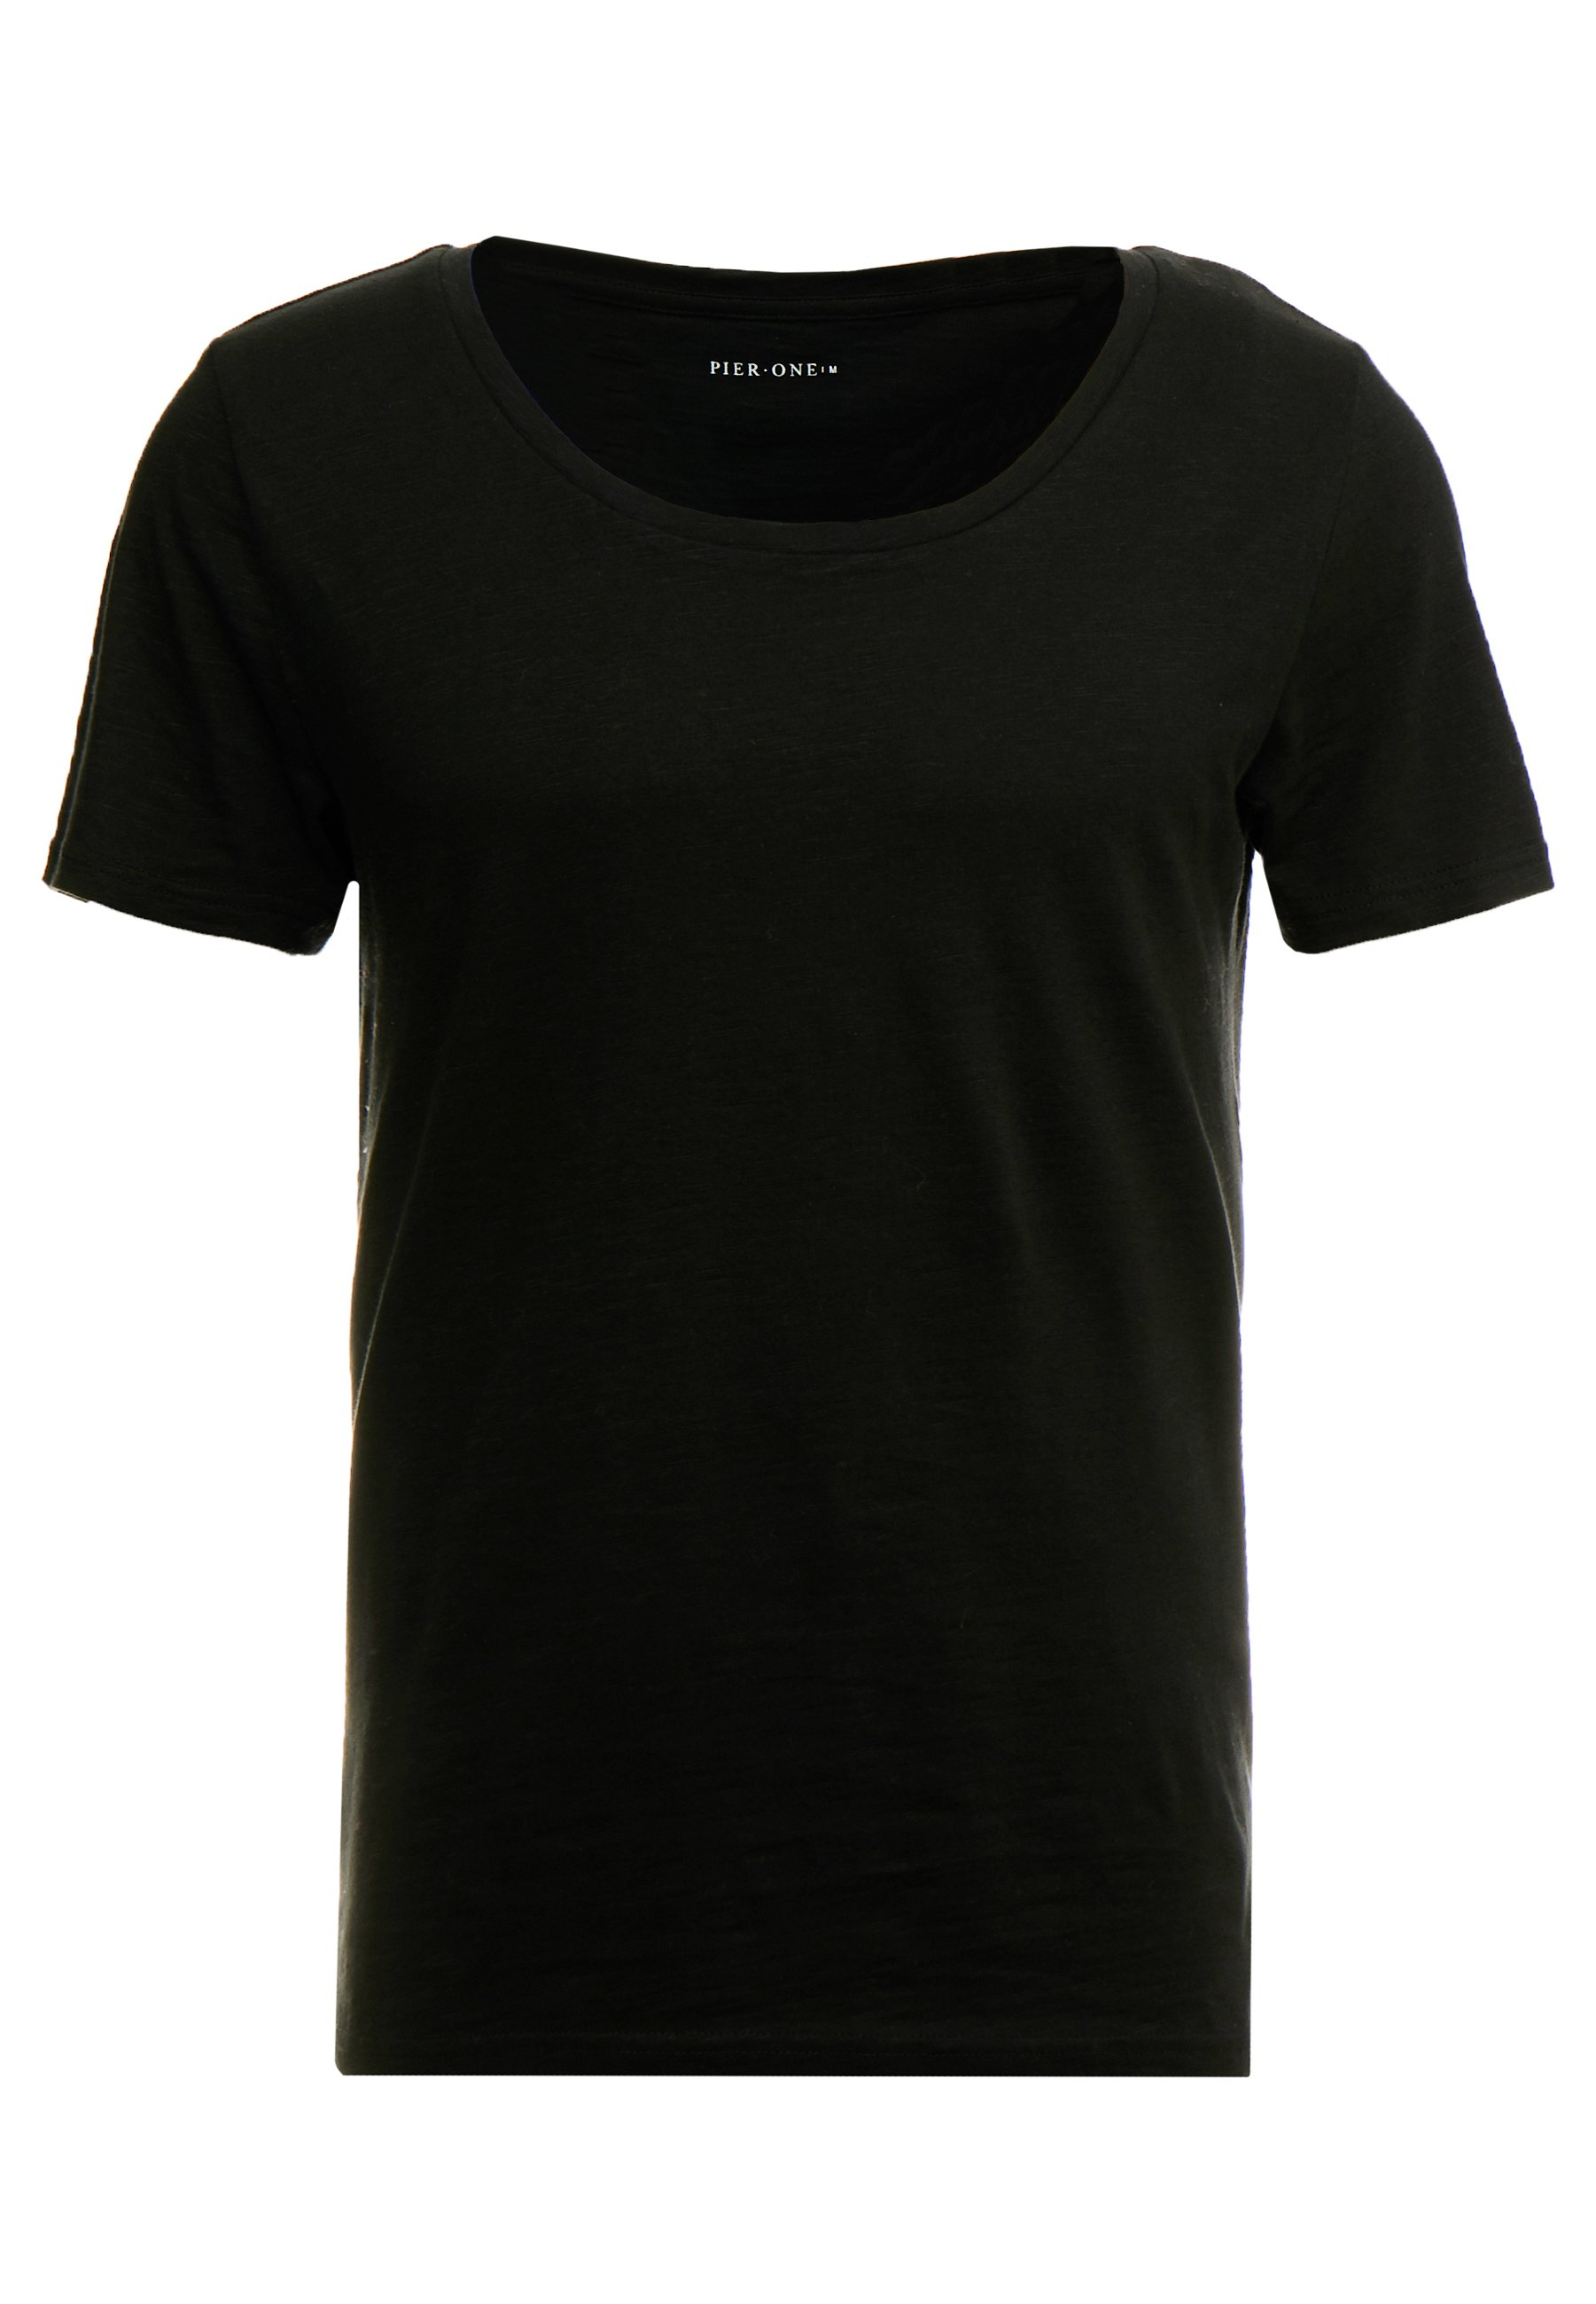 Pier One T-shirt Basic - Dark Gray O2dNh